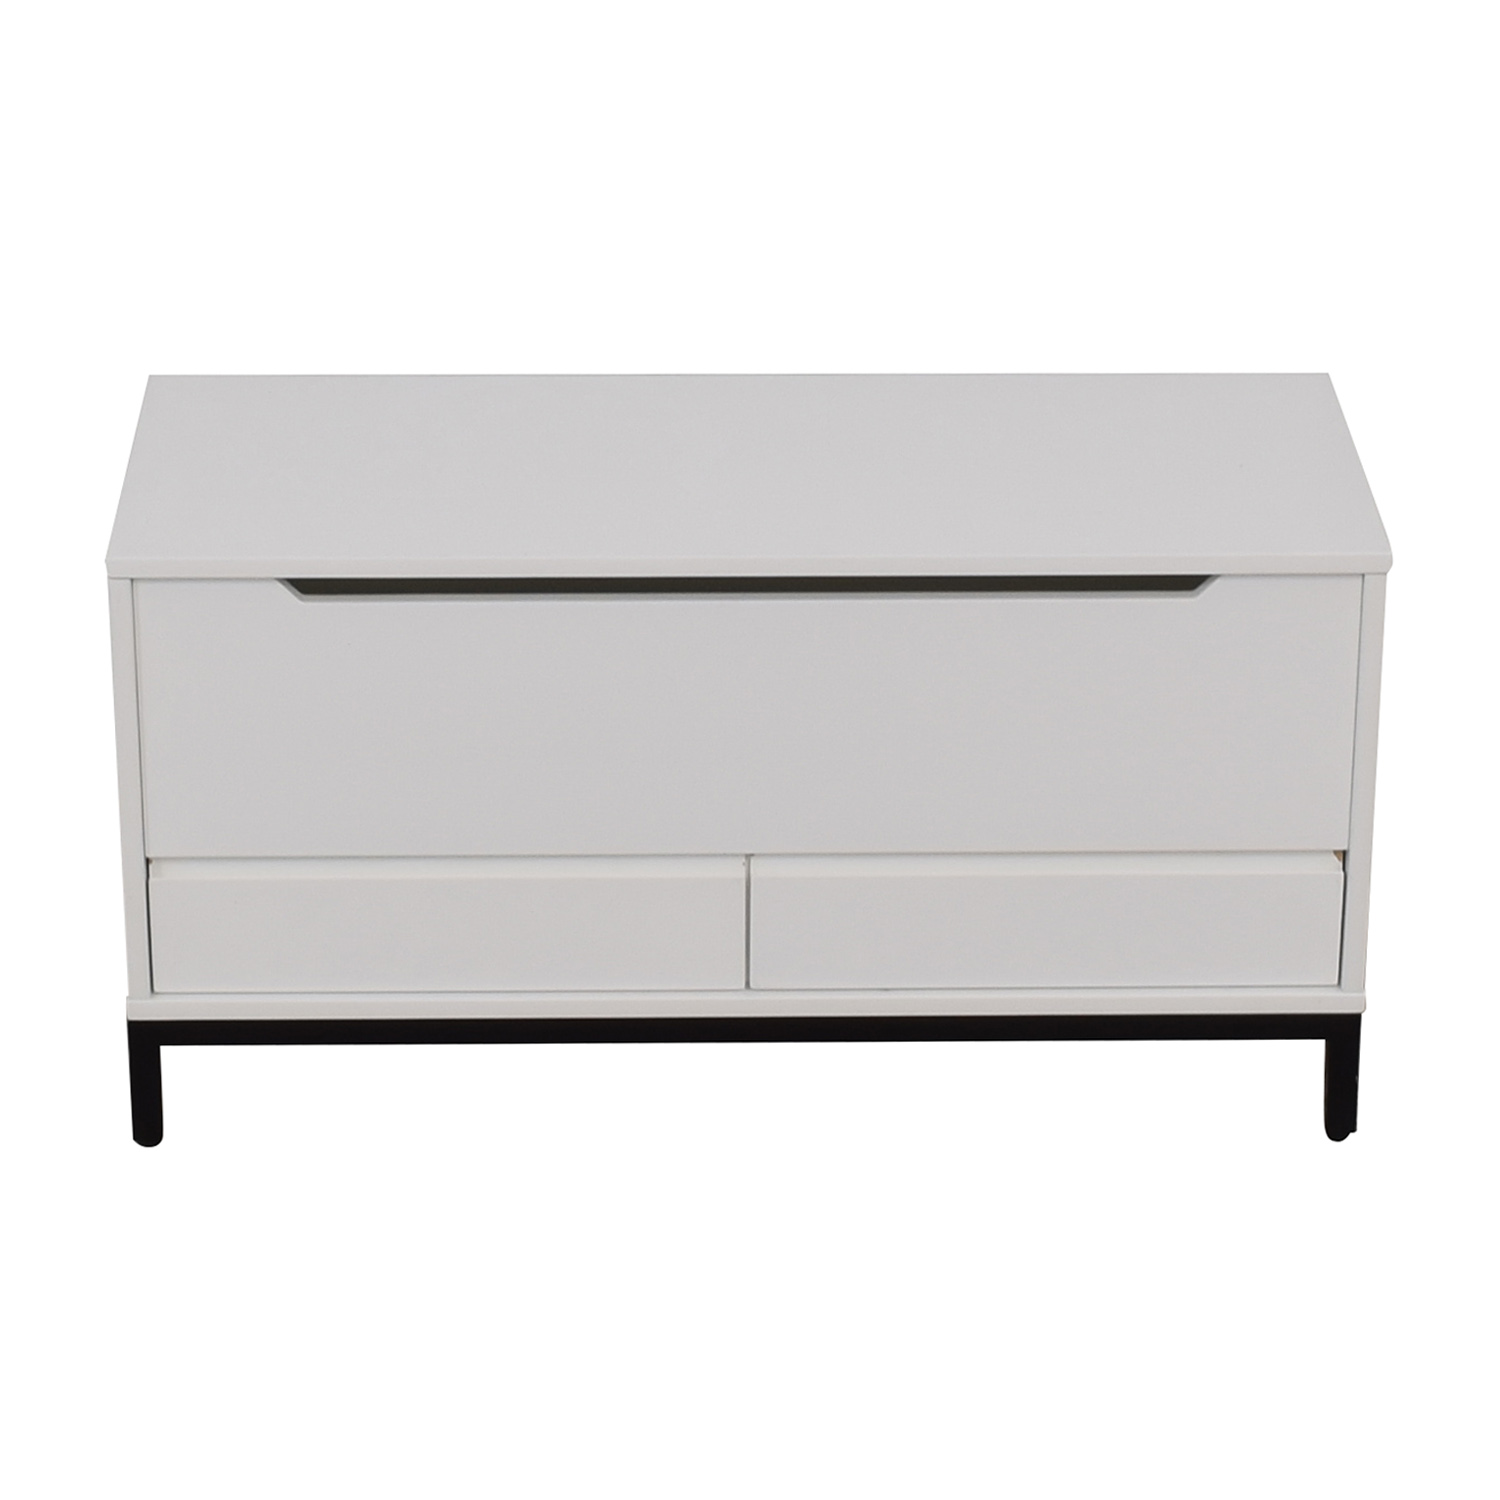 Land of Nod Land of Nod White Two-Drawer Storage Bench Storage